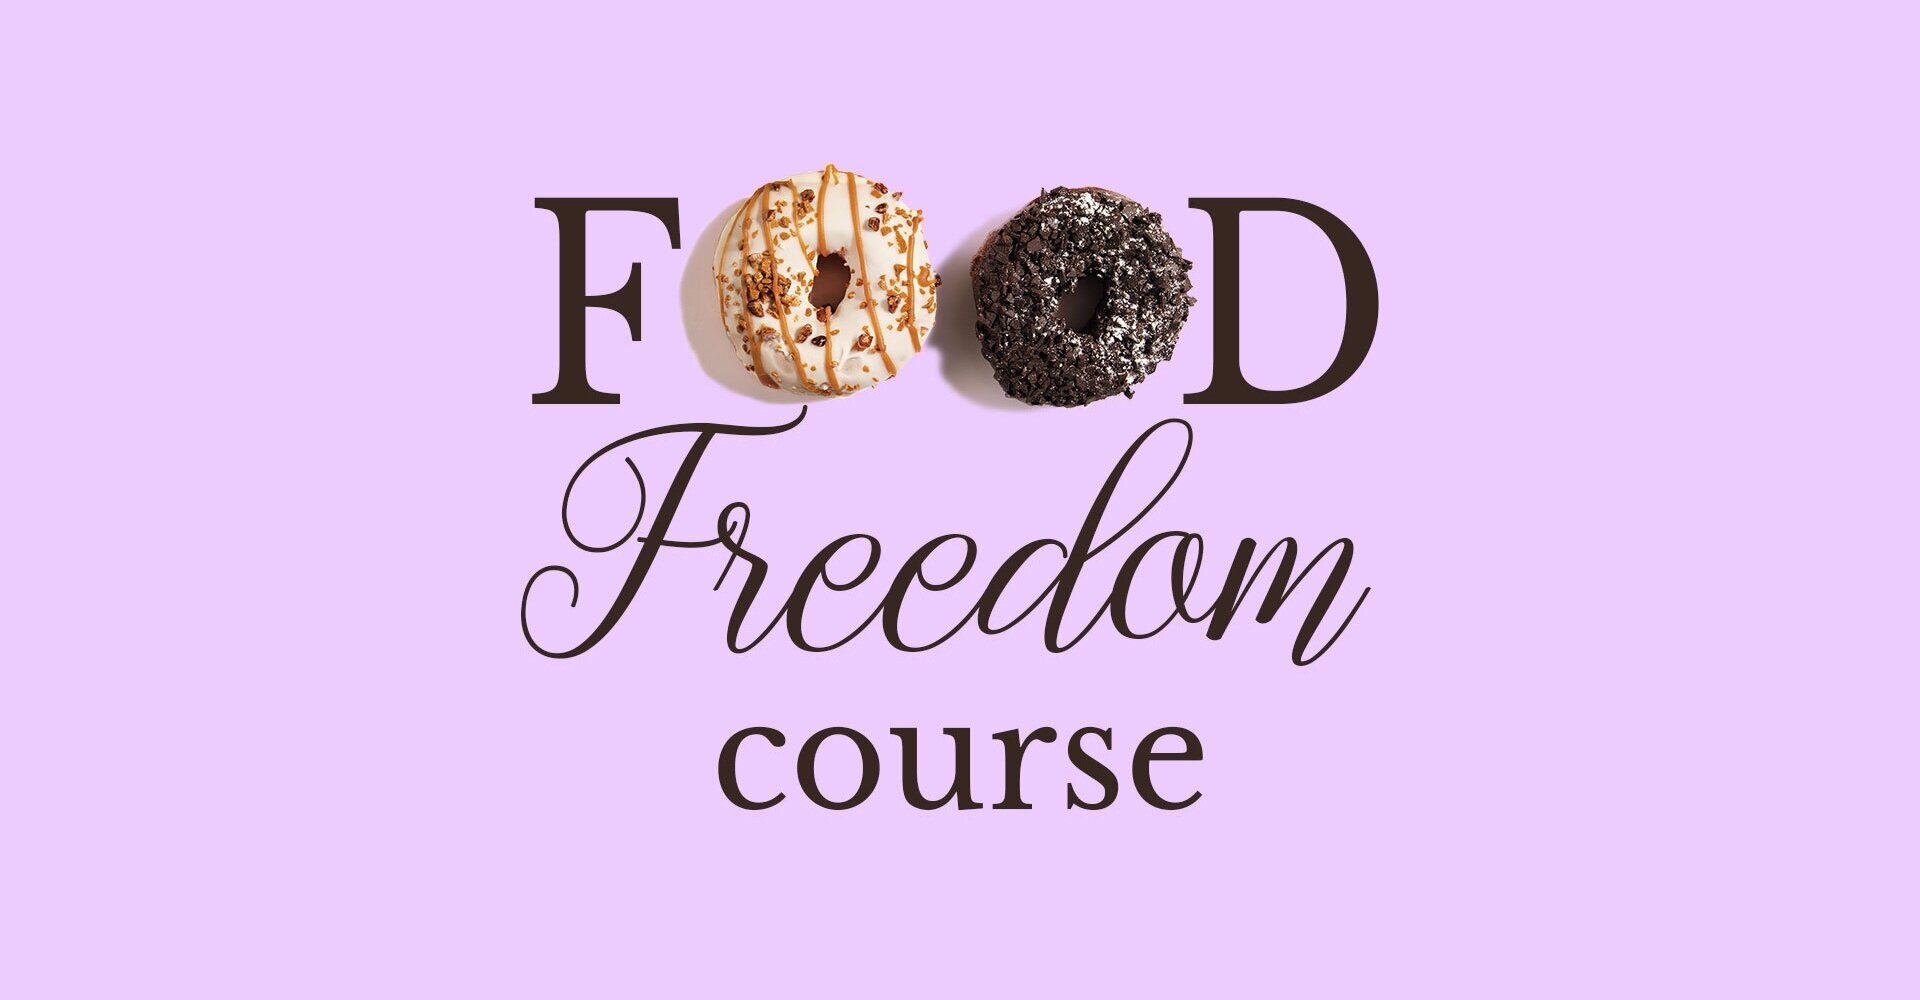 Food-freedom-course-1920-banner-trimmed.jpg